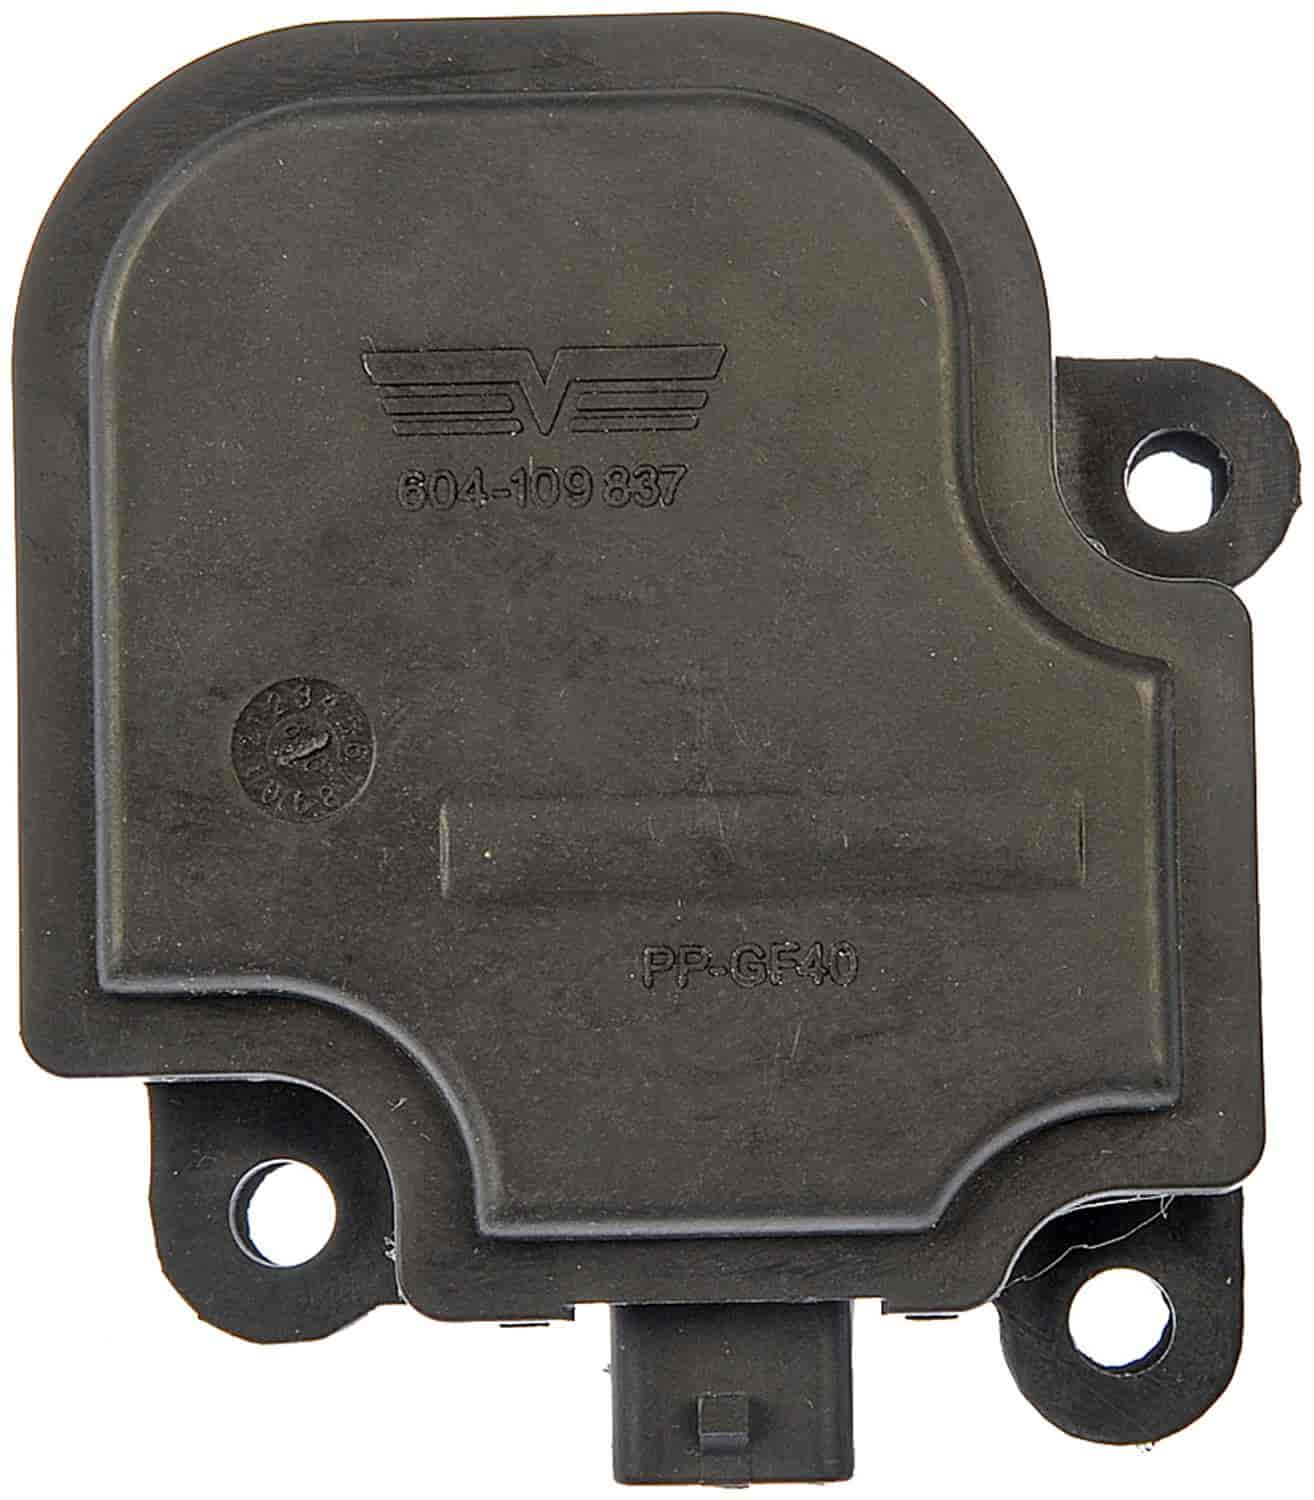 Dorman Products 604-109